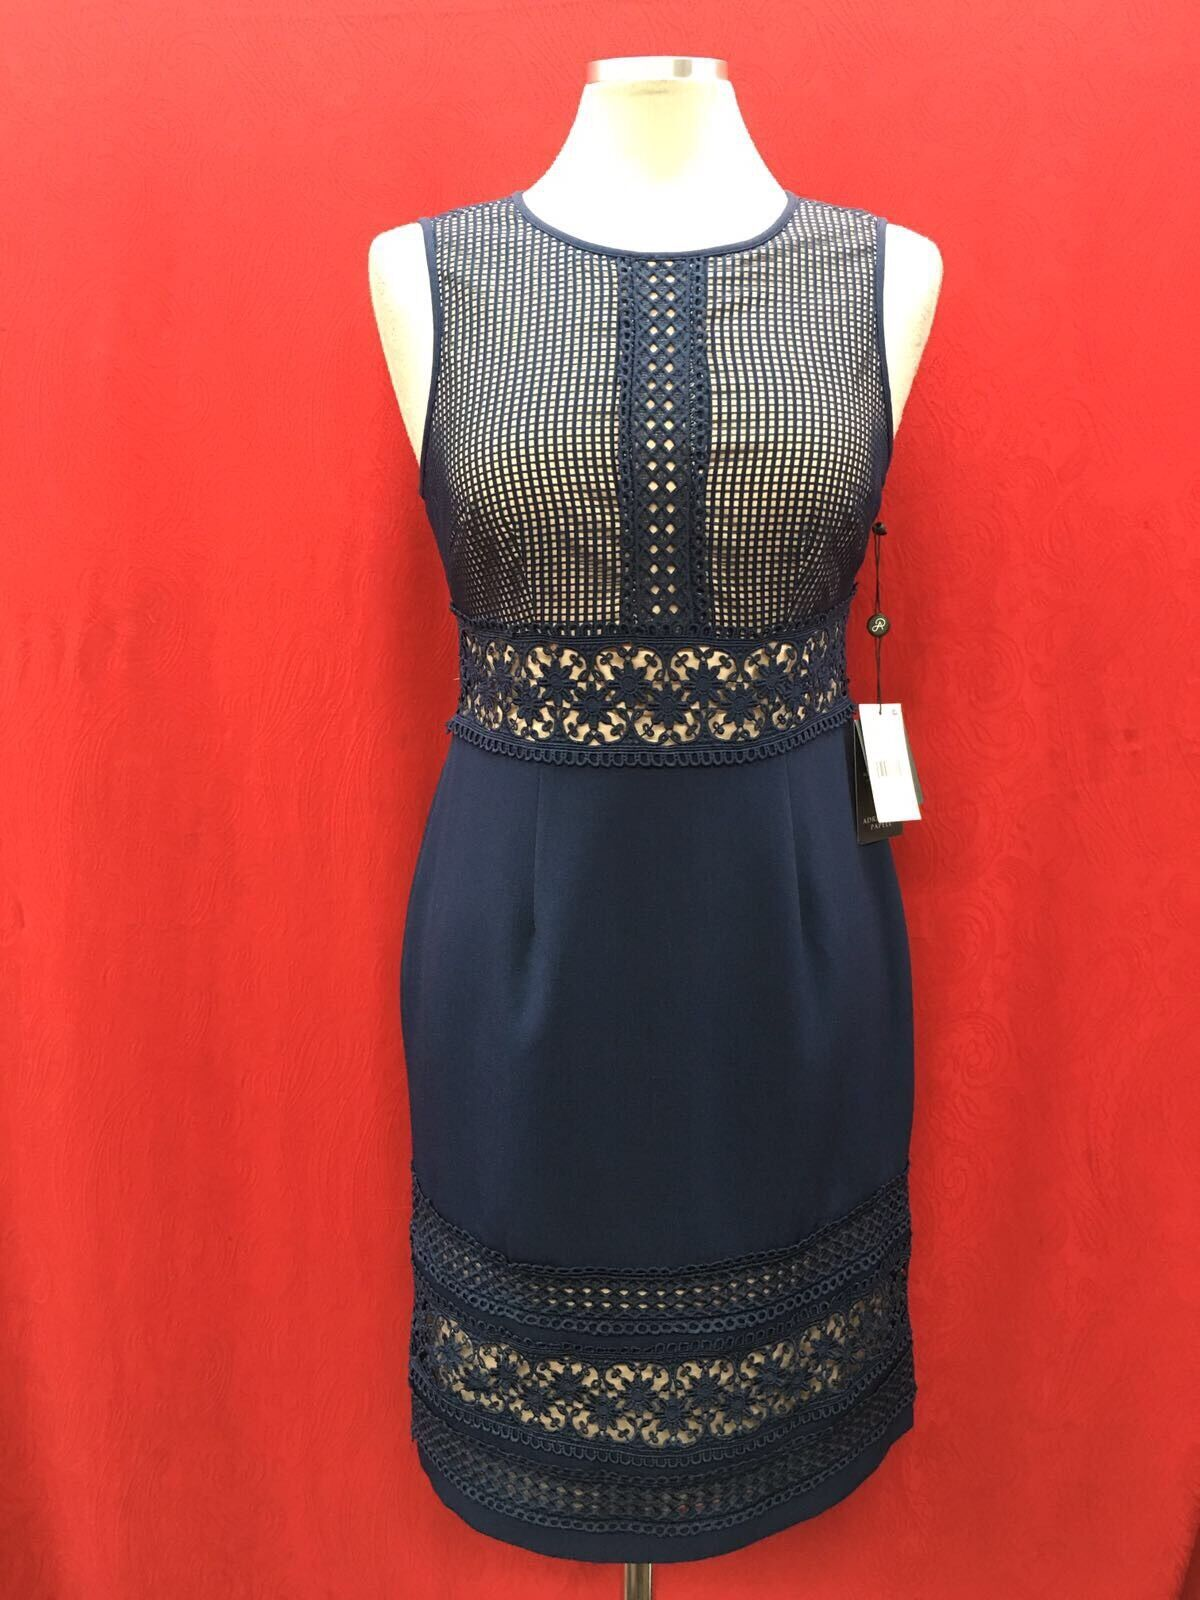 ADRIANNA PAPELL DRESS  NEW WITH TAG SIZE 8 RETAIL 160  LENGTH 39  NAVY LINED